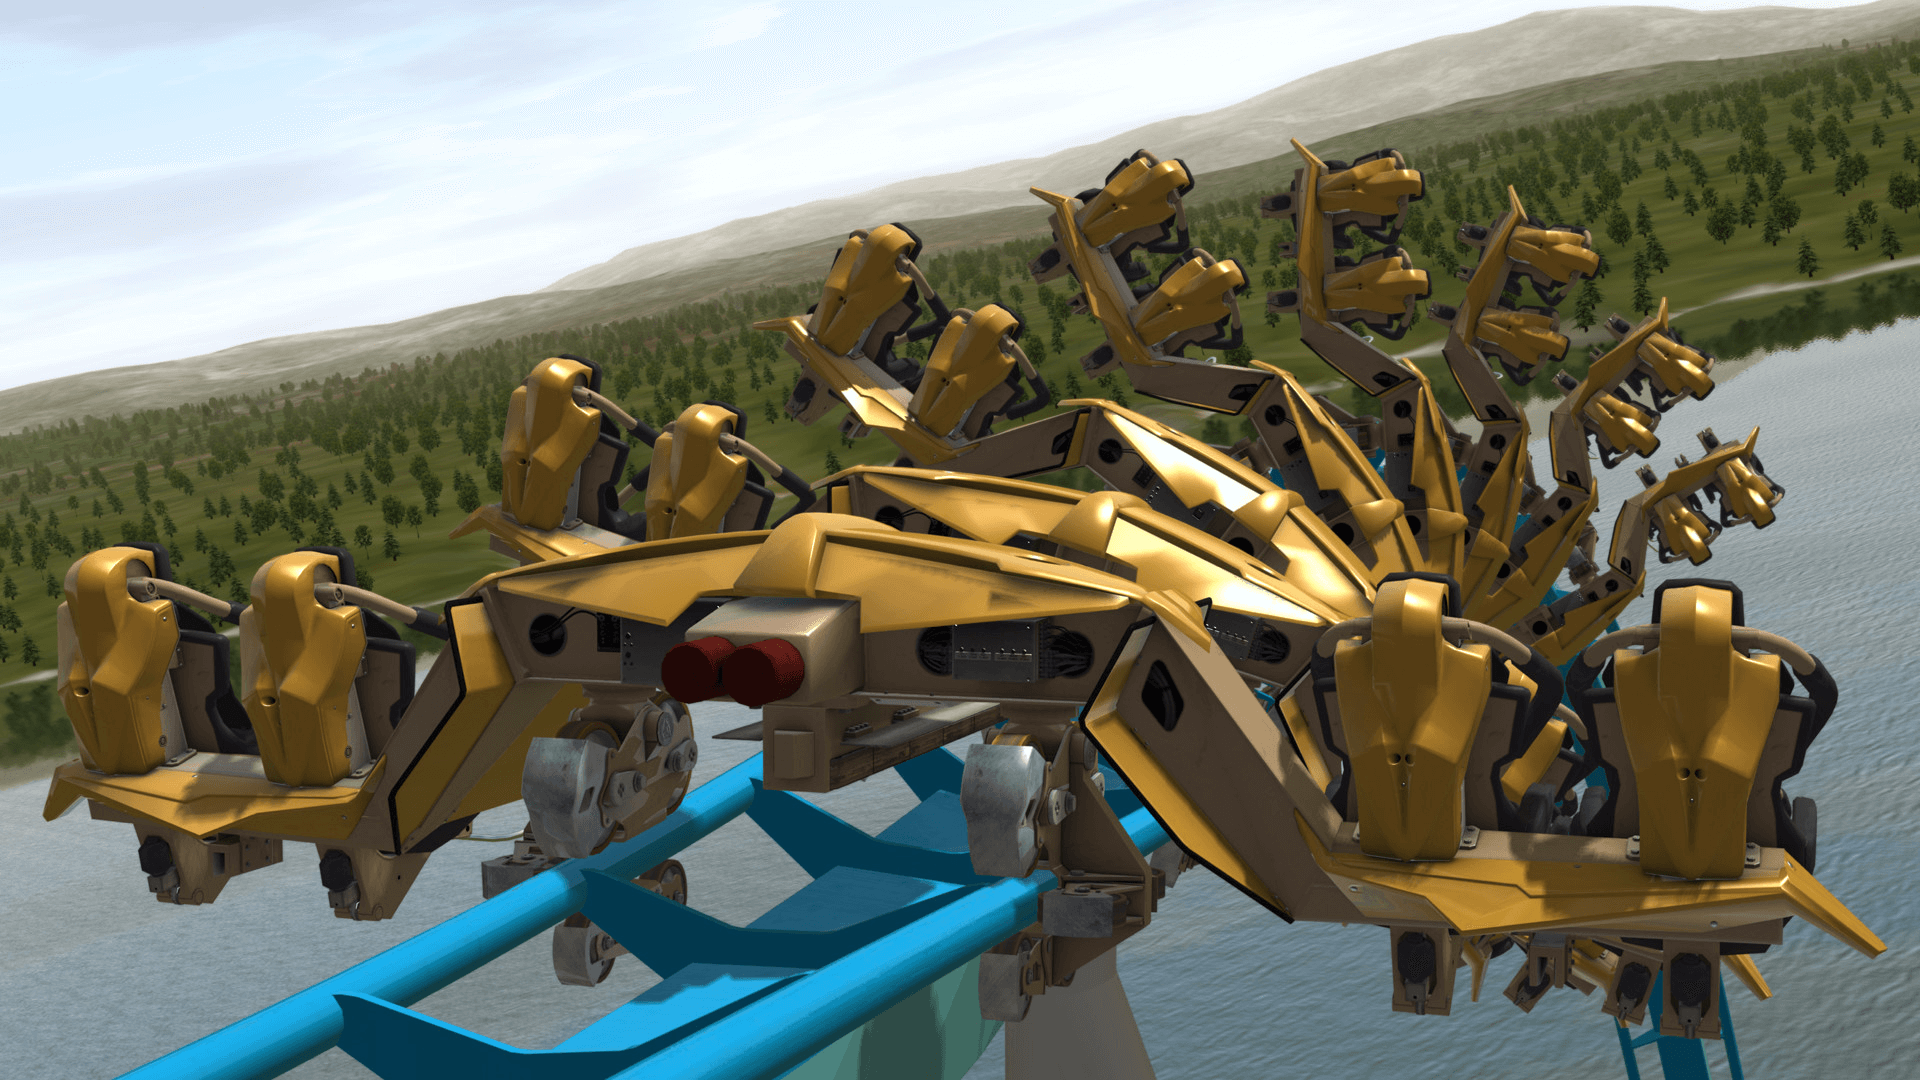 NoLimits 2 Roller Coaster Simulation